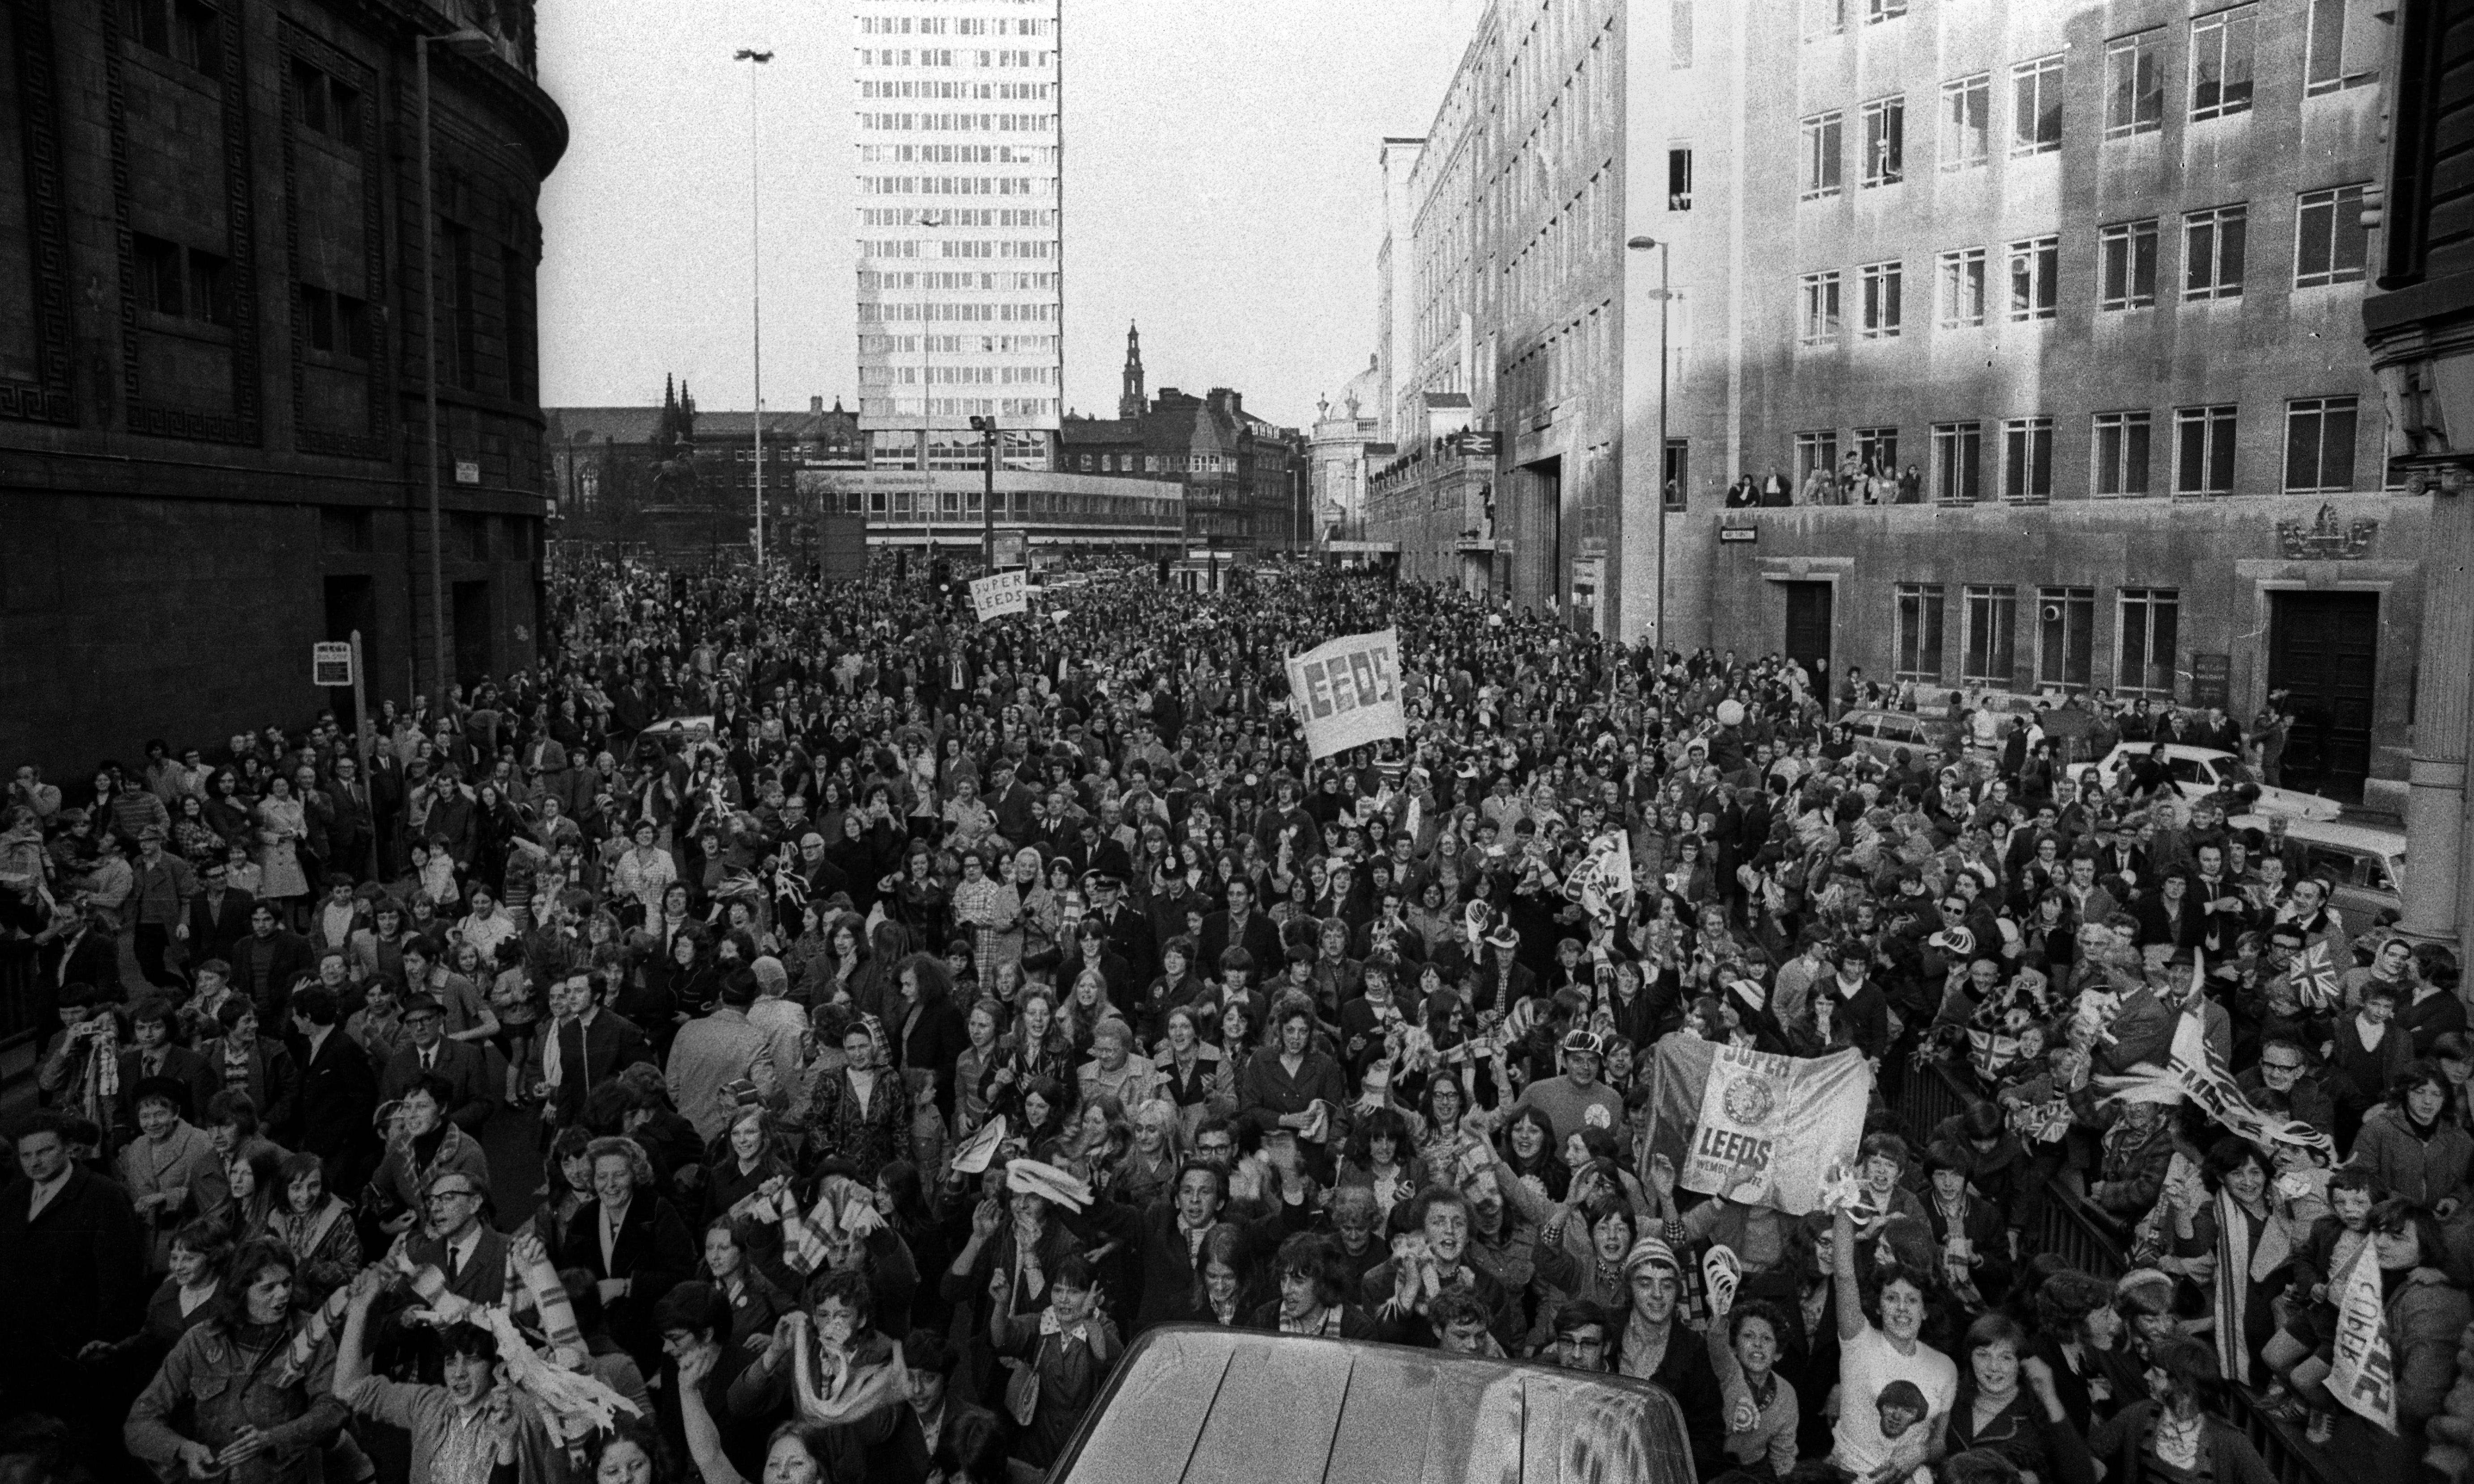 Black and white photograph showing streets of Leeds full of people celebrating